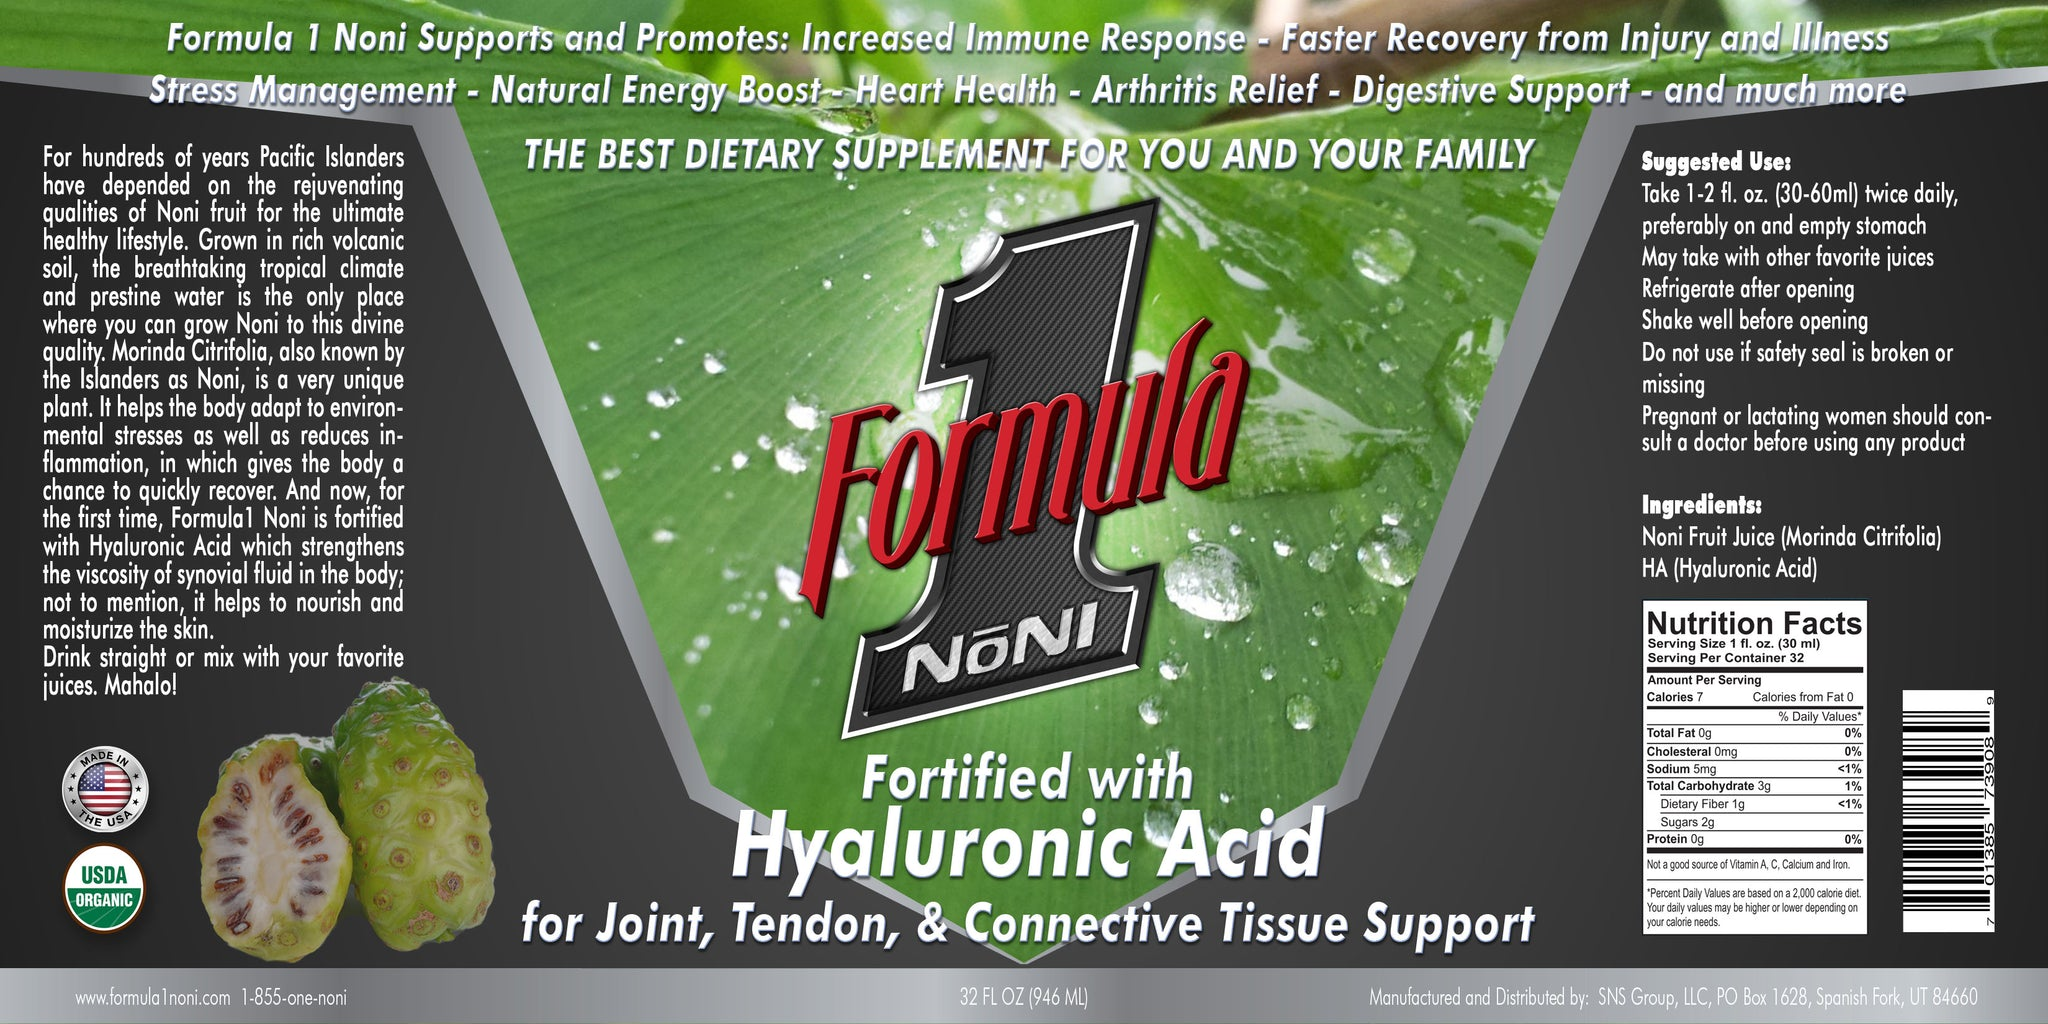 Human-Formula 1 Noni Blue Label with Hyaluronic Acid (12 pk case)